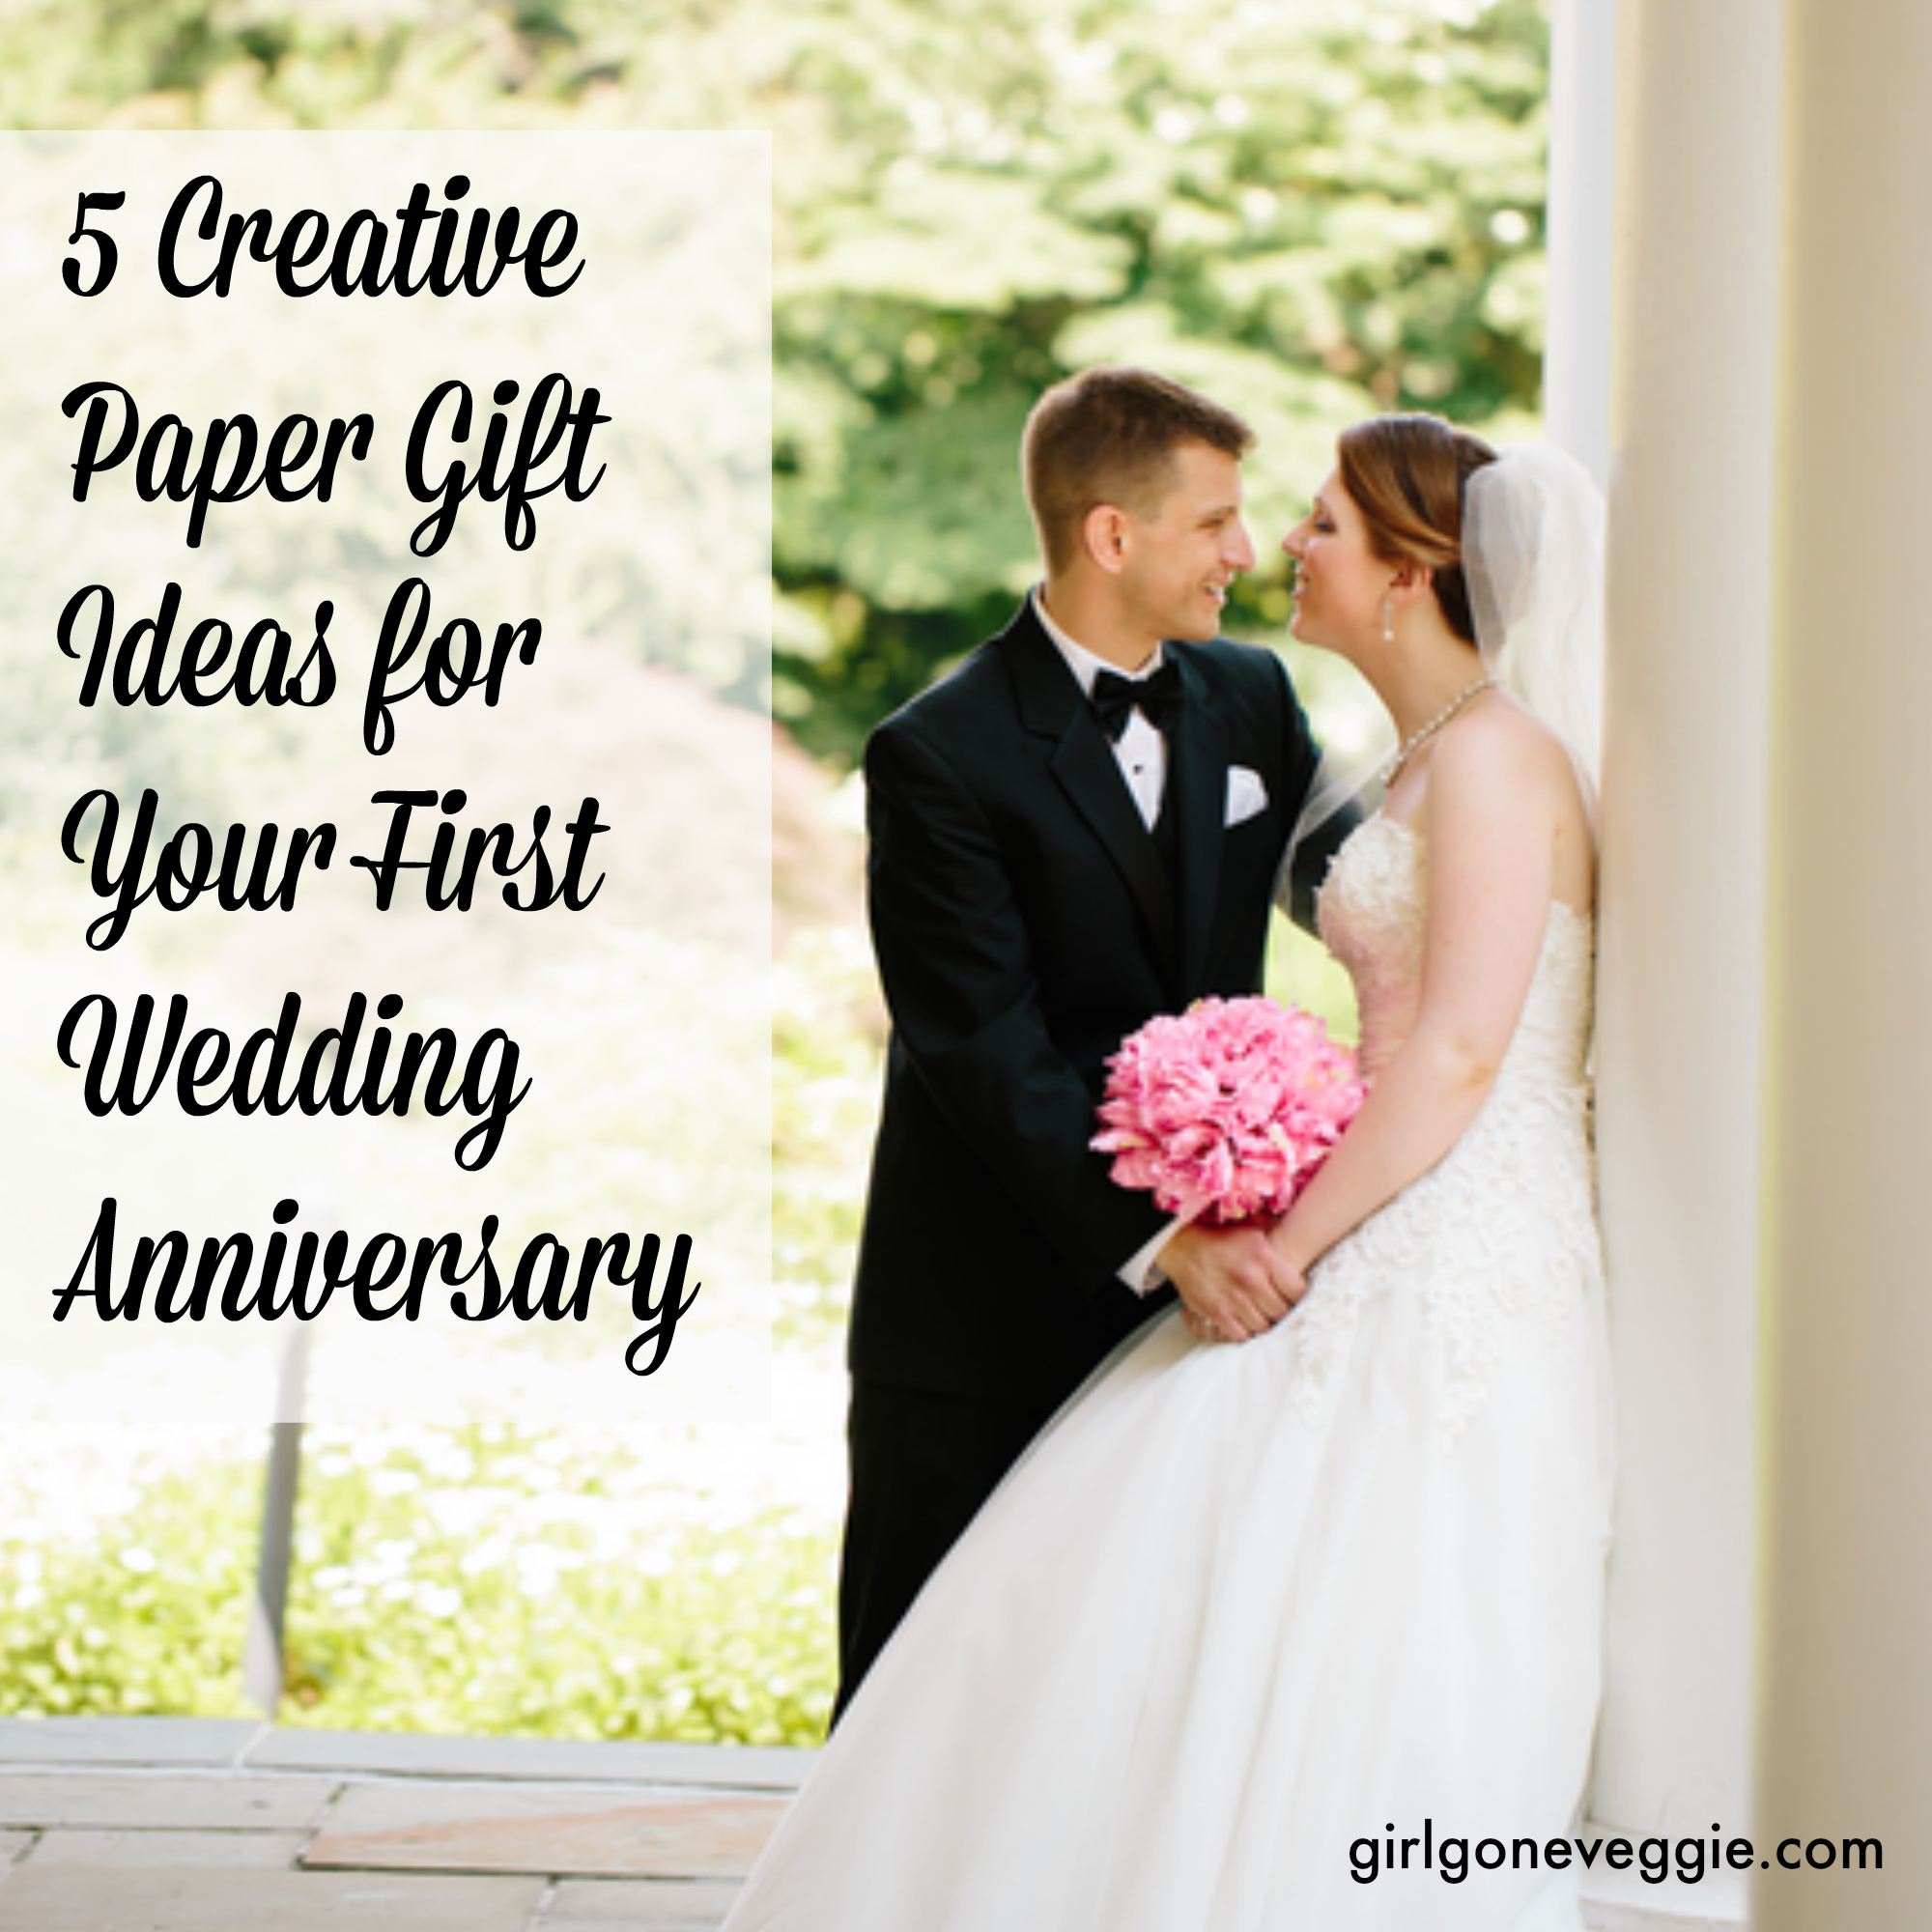 Wedding Anniversary Gifts: Wedding Anniversary Gift Ideas First Year